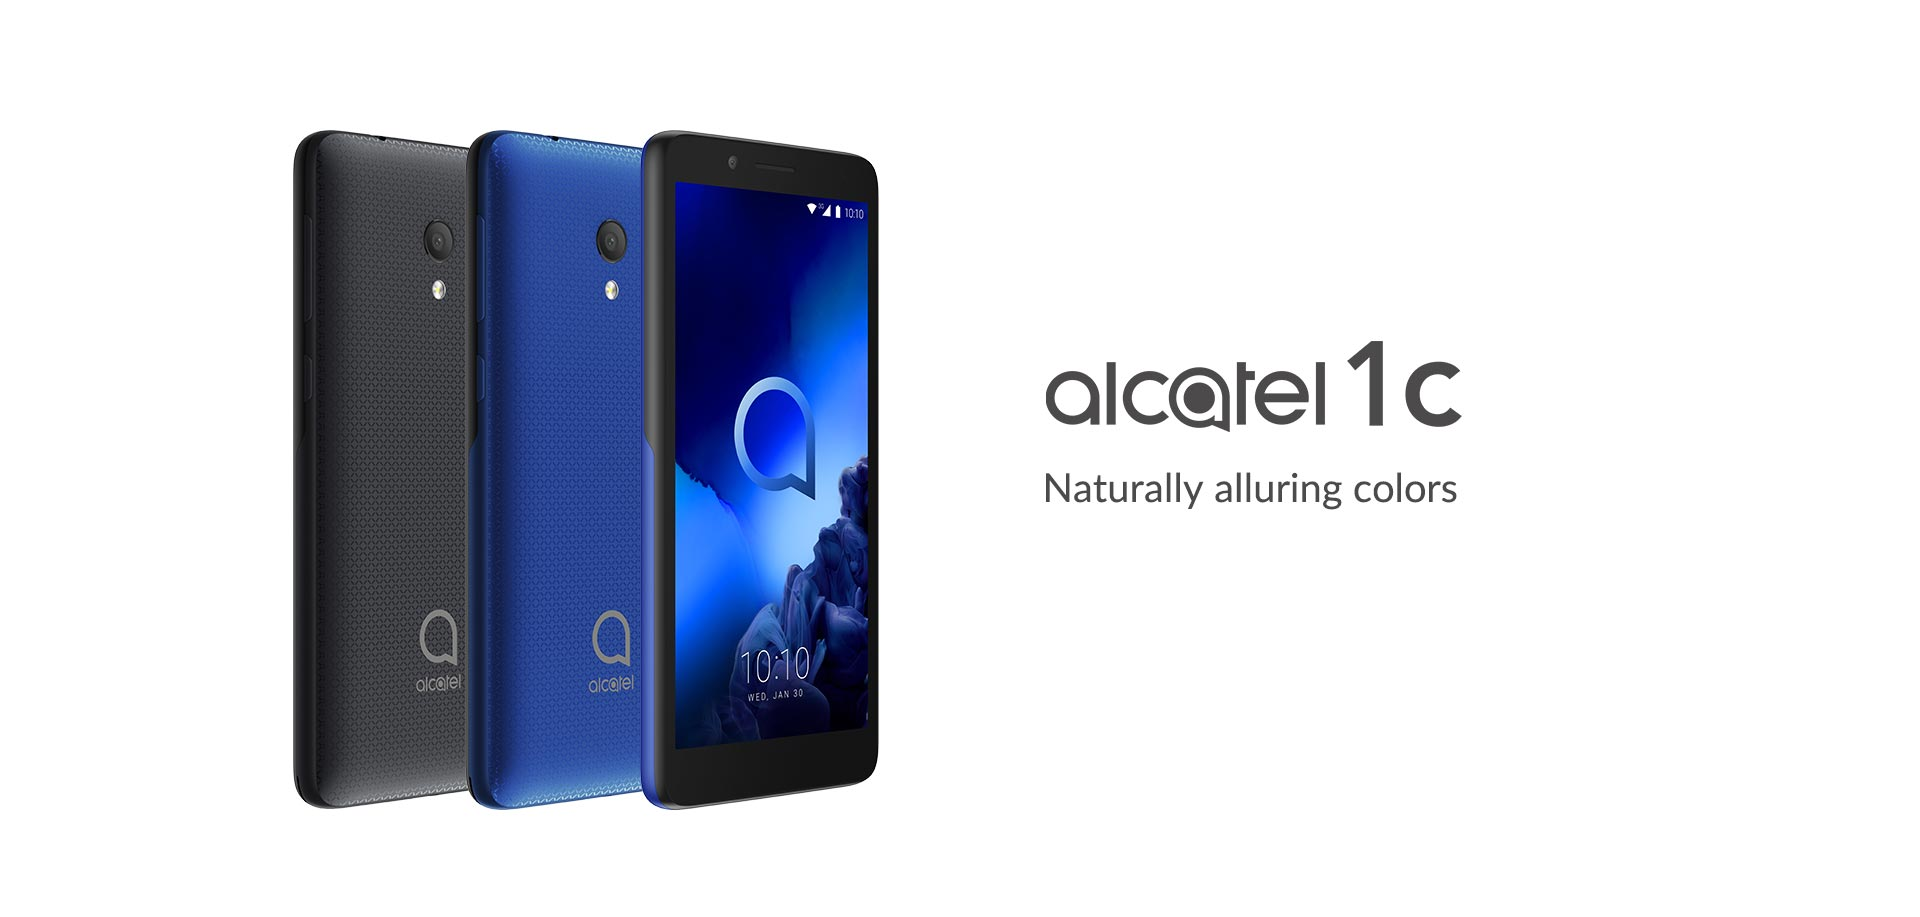 Alcatel is releasing two new budget phones